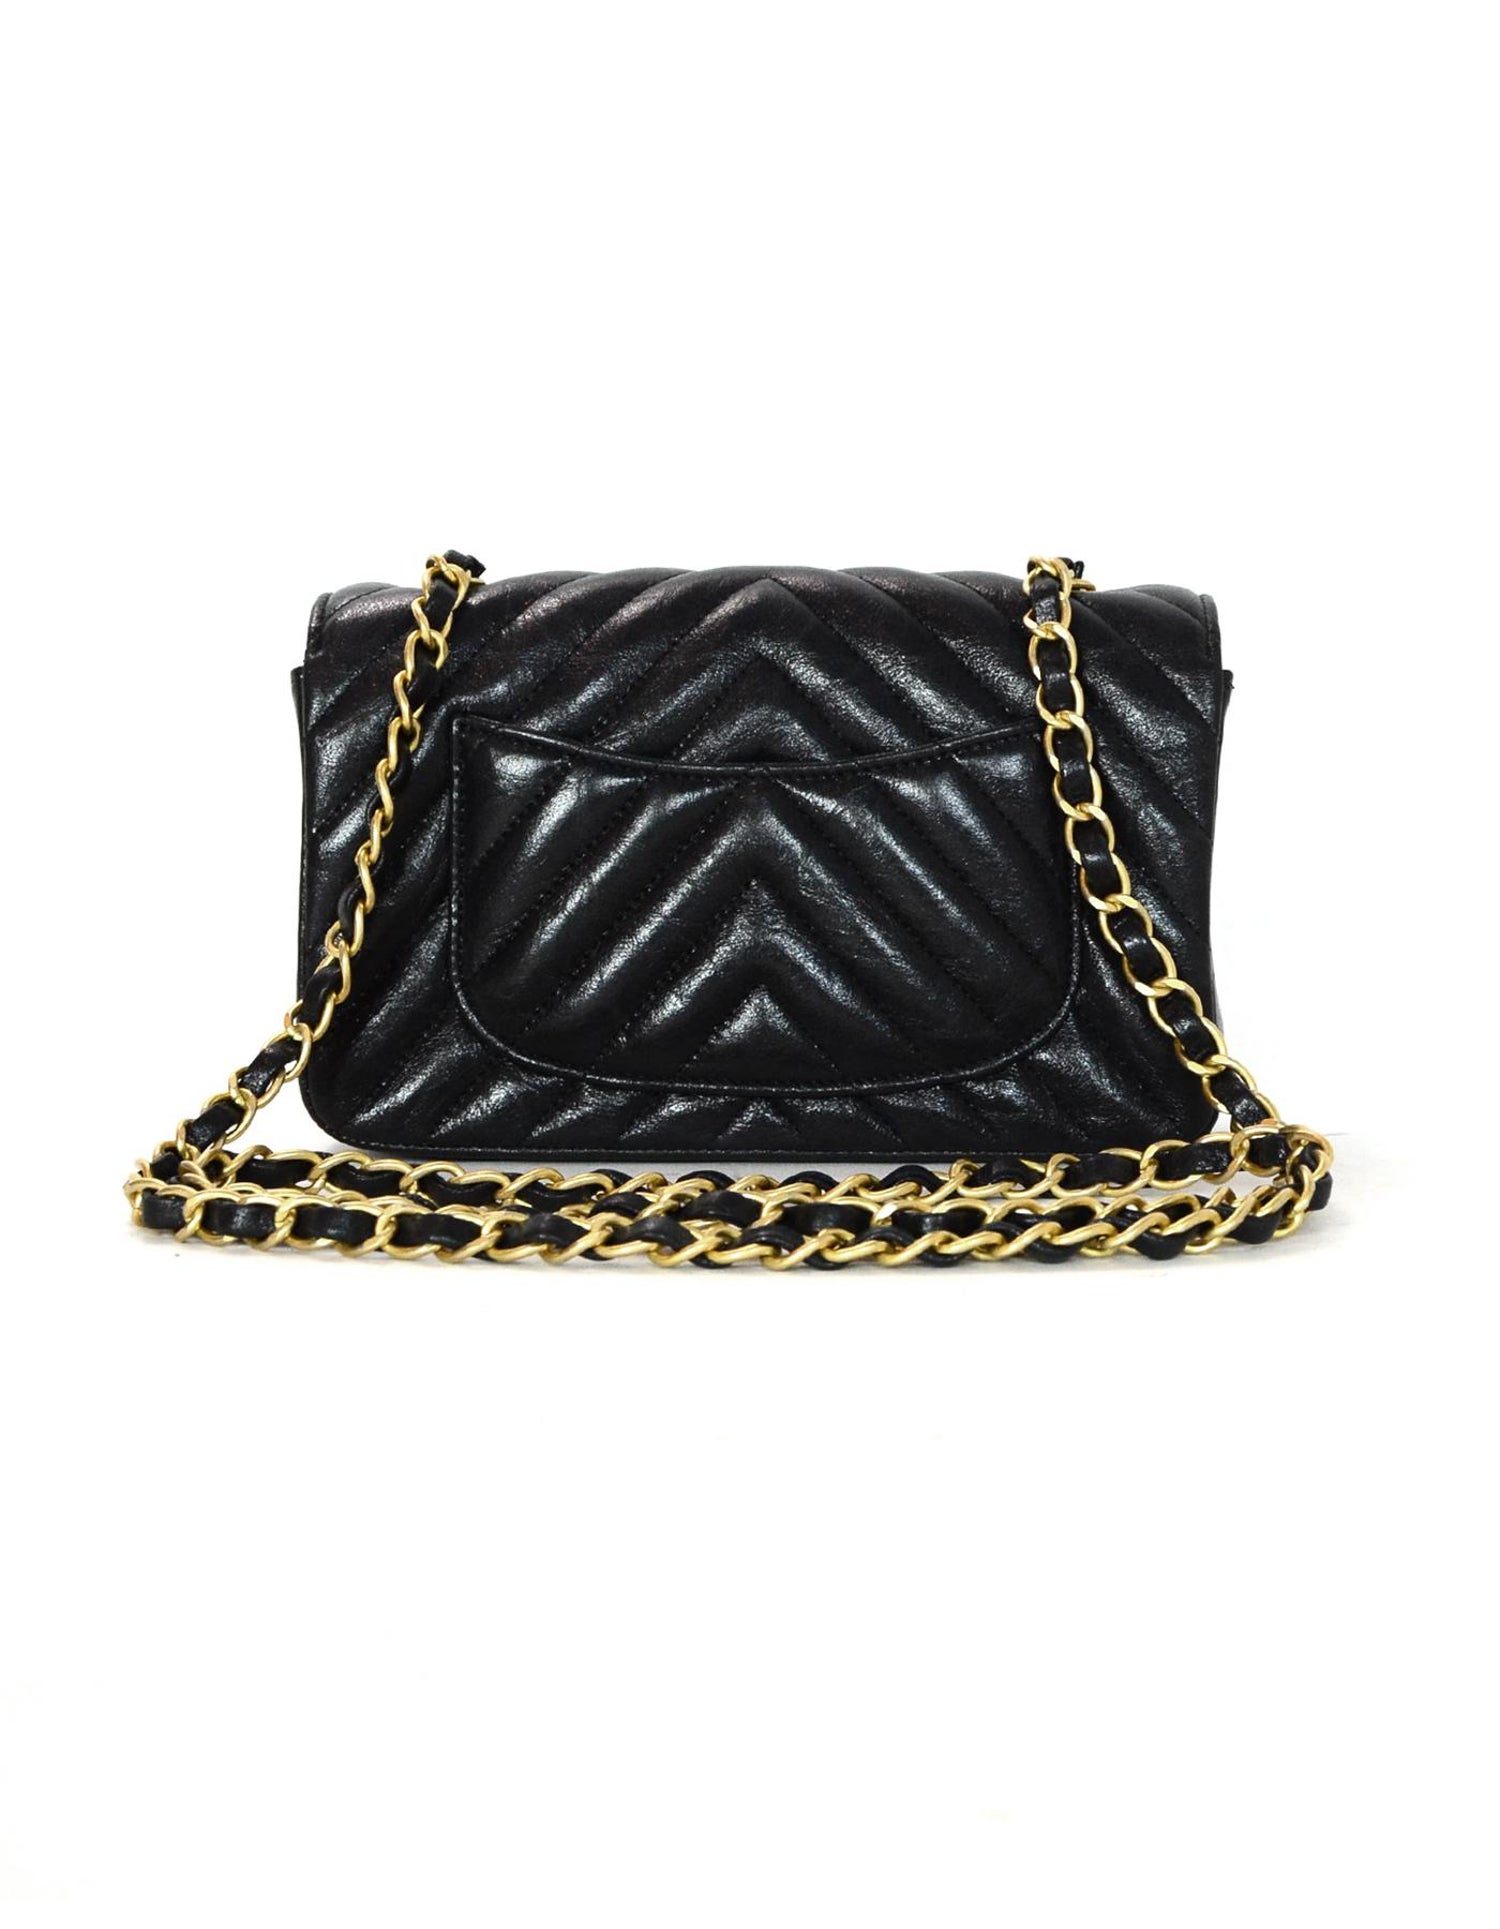 652029018761 Chanel 2018 Metallic Black Chevron Quilted Rectangular Mini Flap Crossbody  Bag For Sale at 1stdibs